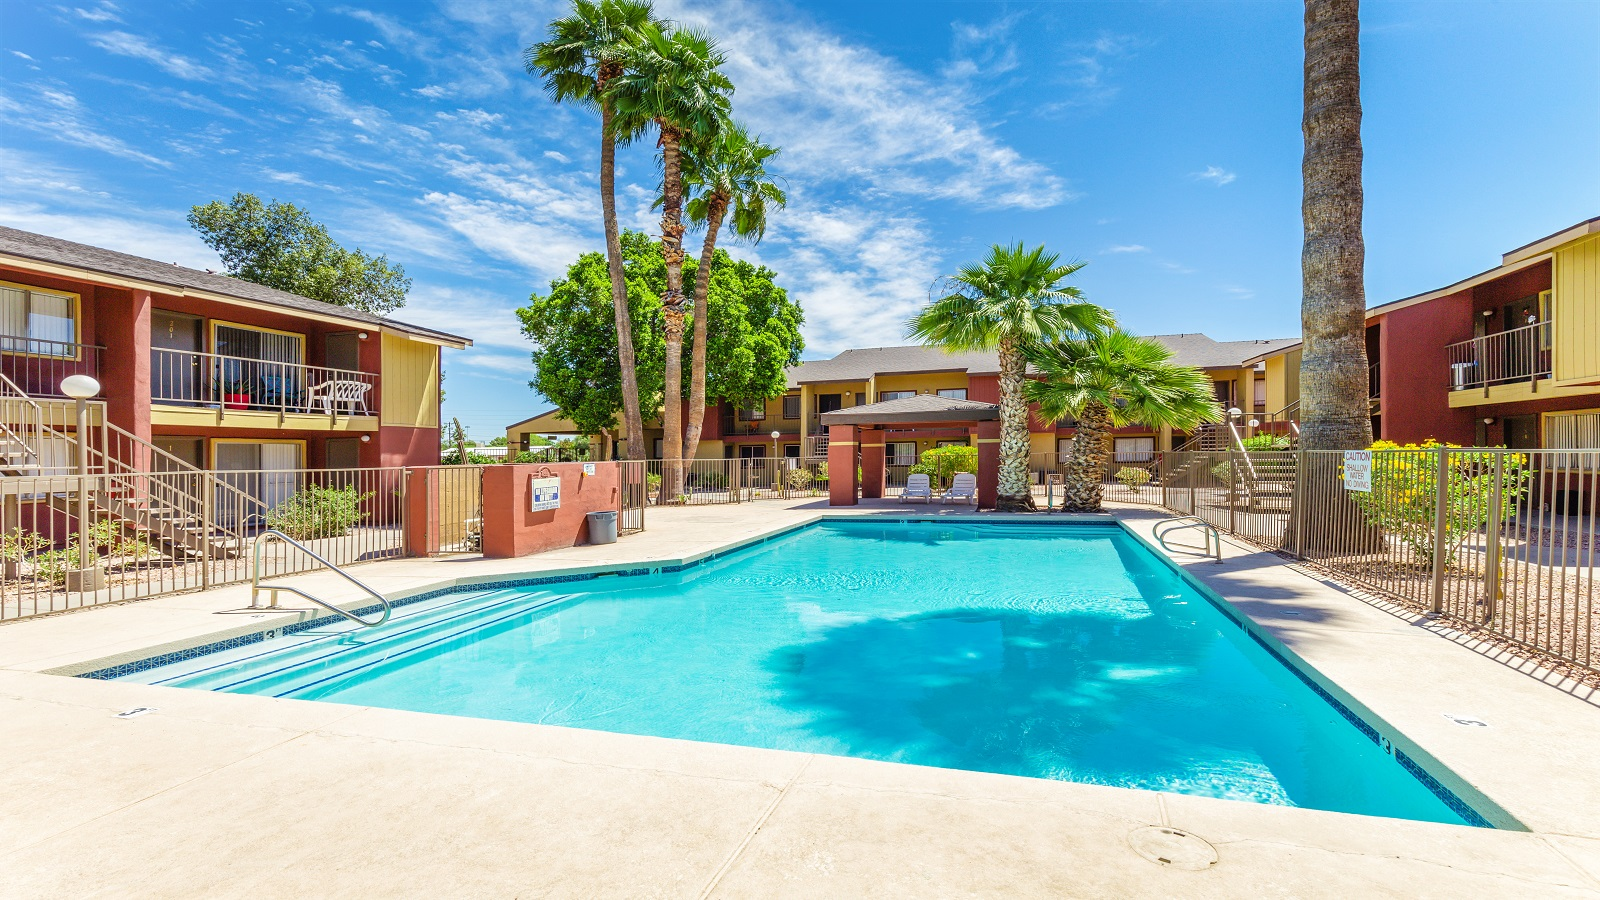 Silver Tree Apartments | 4336 North 35th Avenue, Phoenix, AZ 85017 | 98 Units | Built in 1986 | $8,150,000 | $83,163 Per Unit | $137.78 Per SF